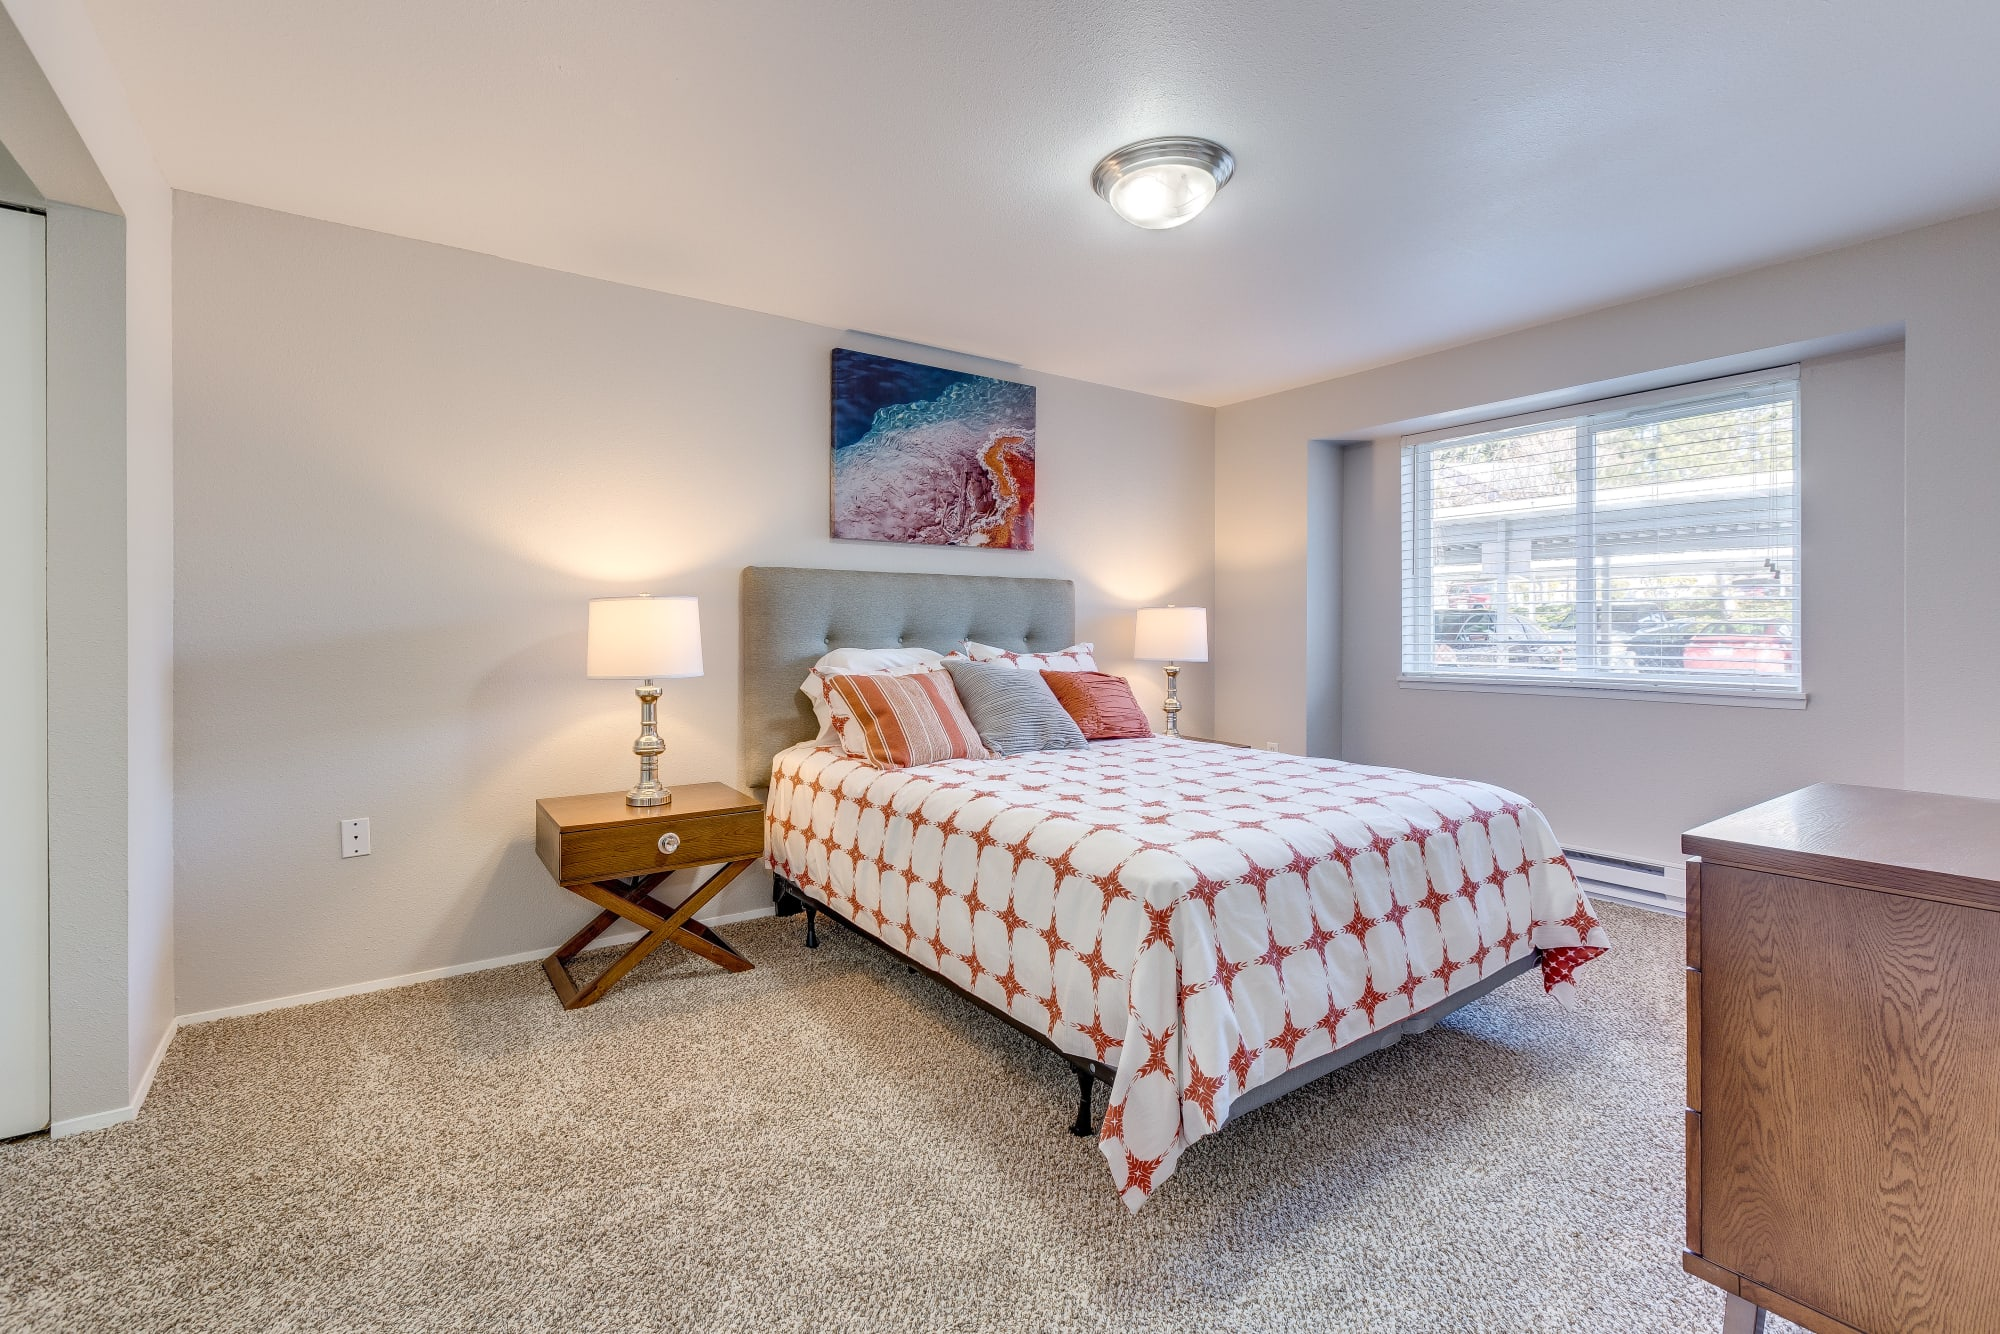 A bedroom with carpet and new furniture at Cascade Ridge in Silverdale, Washington